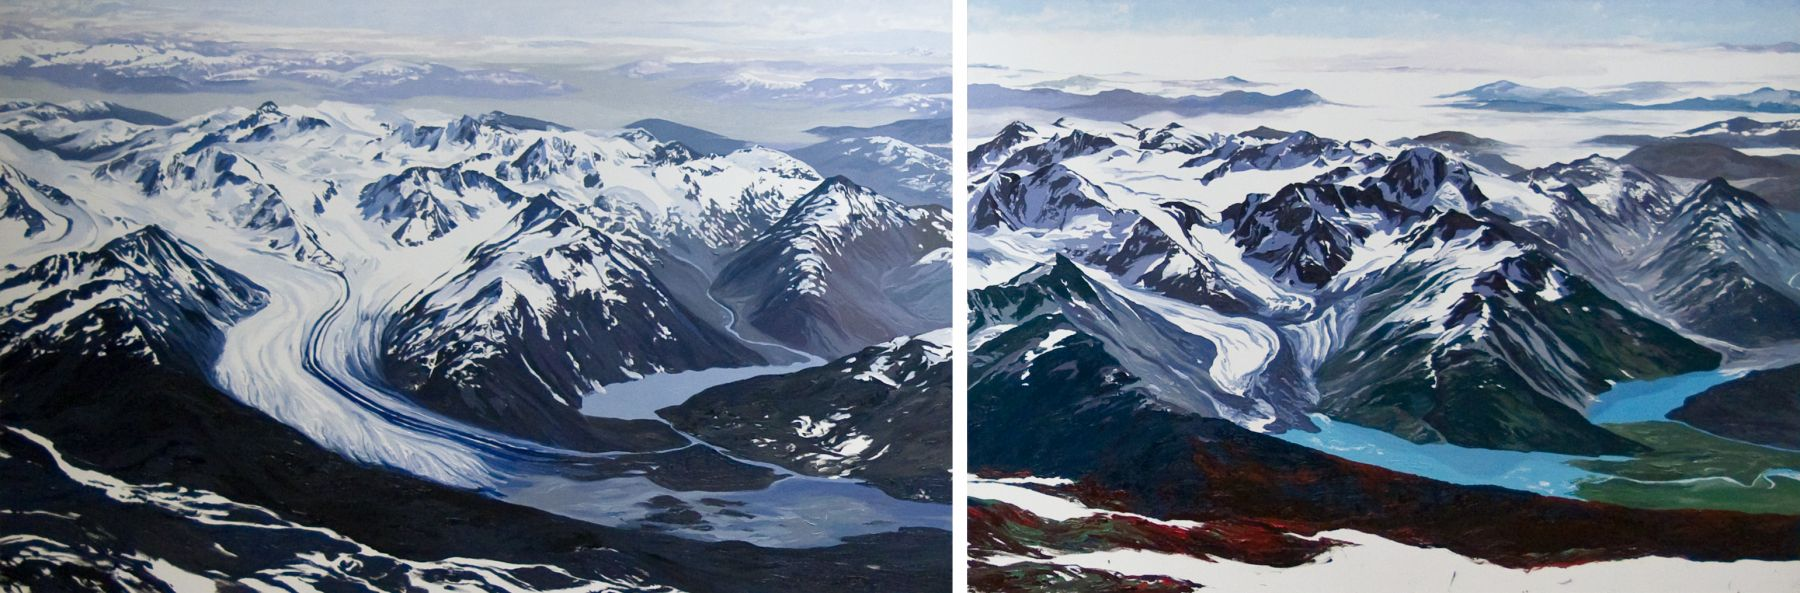 Diane Burko Locks Gallery Twenty Mile Glacier #1 and #2